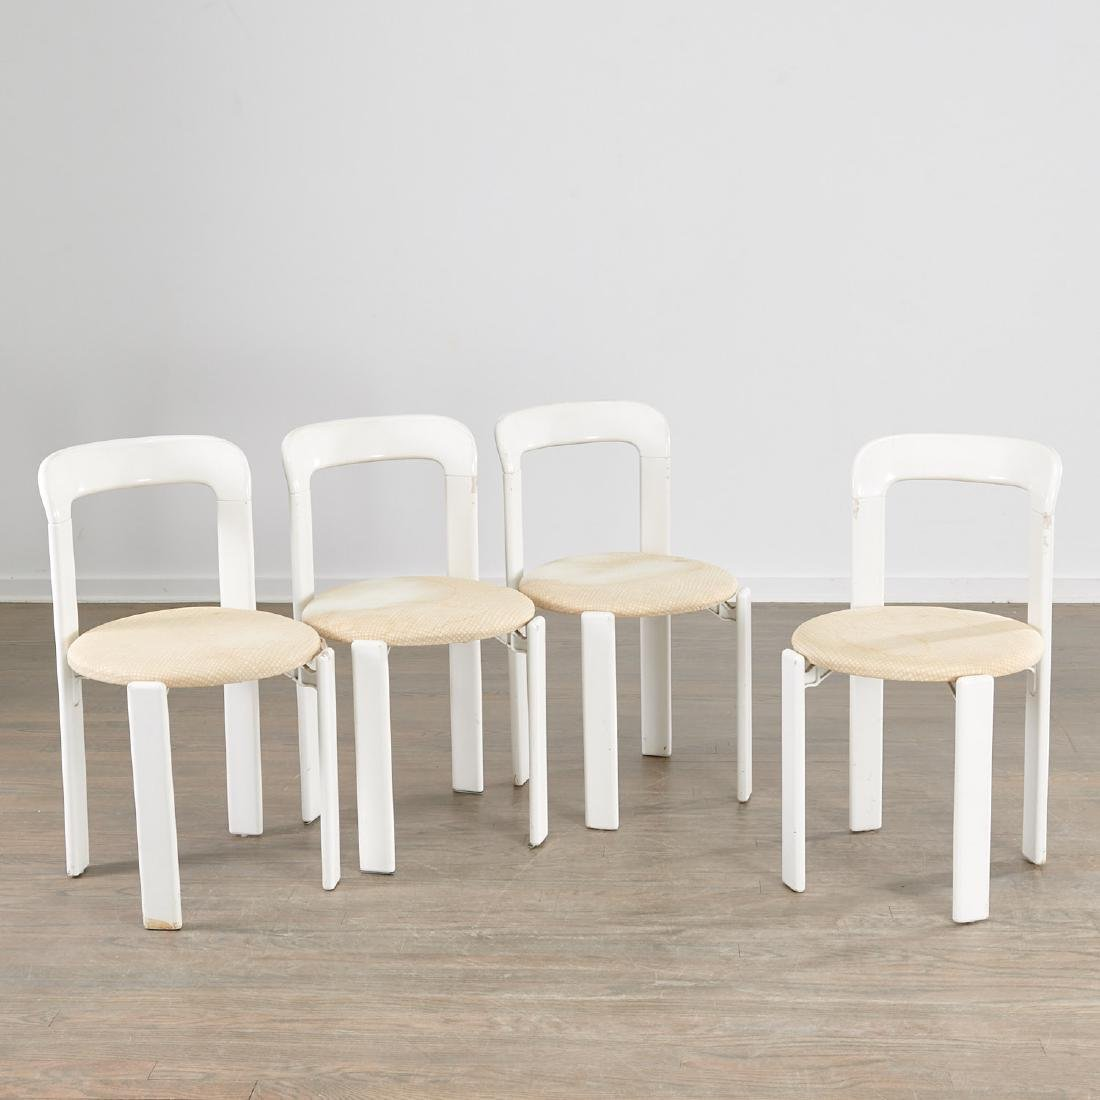 (4) Bruno Rey side chairs